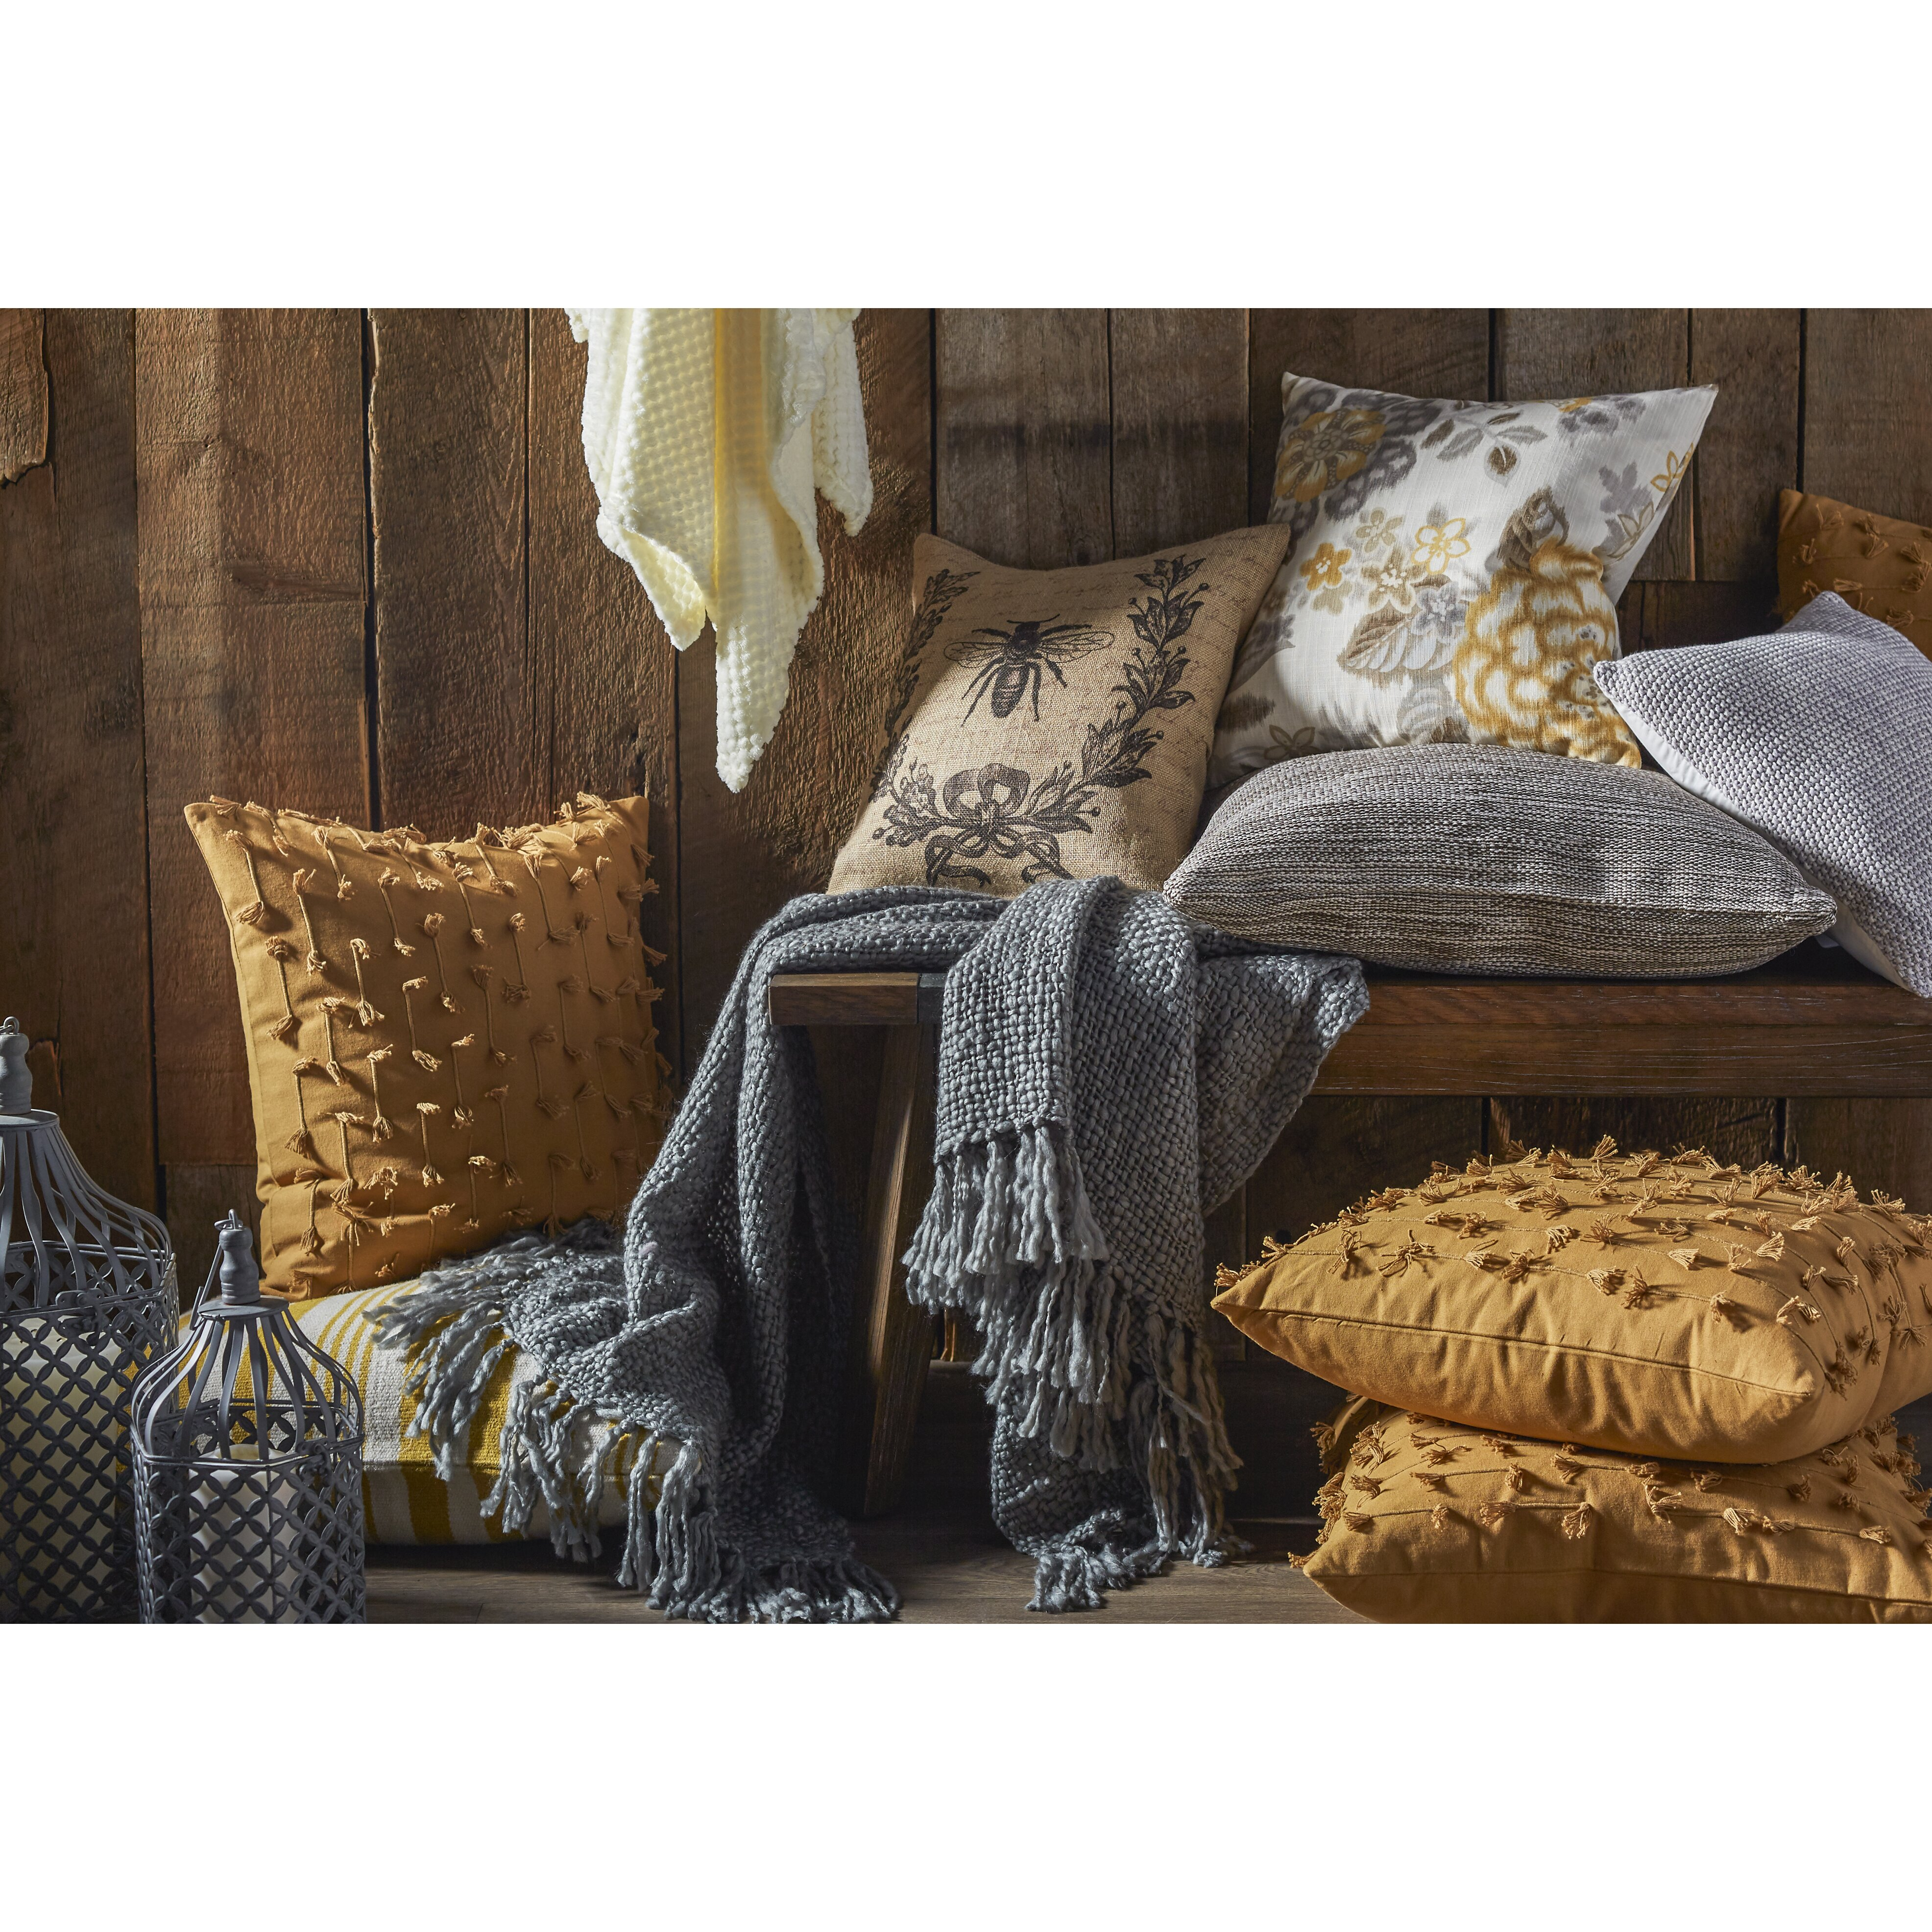 Throw Pillows In Abuja : Fresh American Mingled Indoor/Outdoor Throw Pillow & Reviews Wayfair